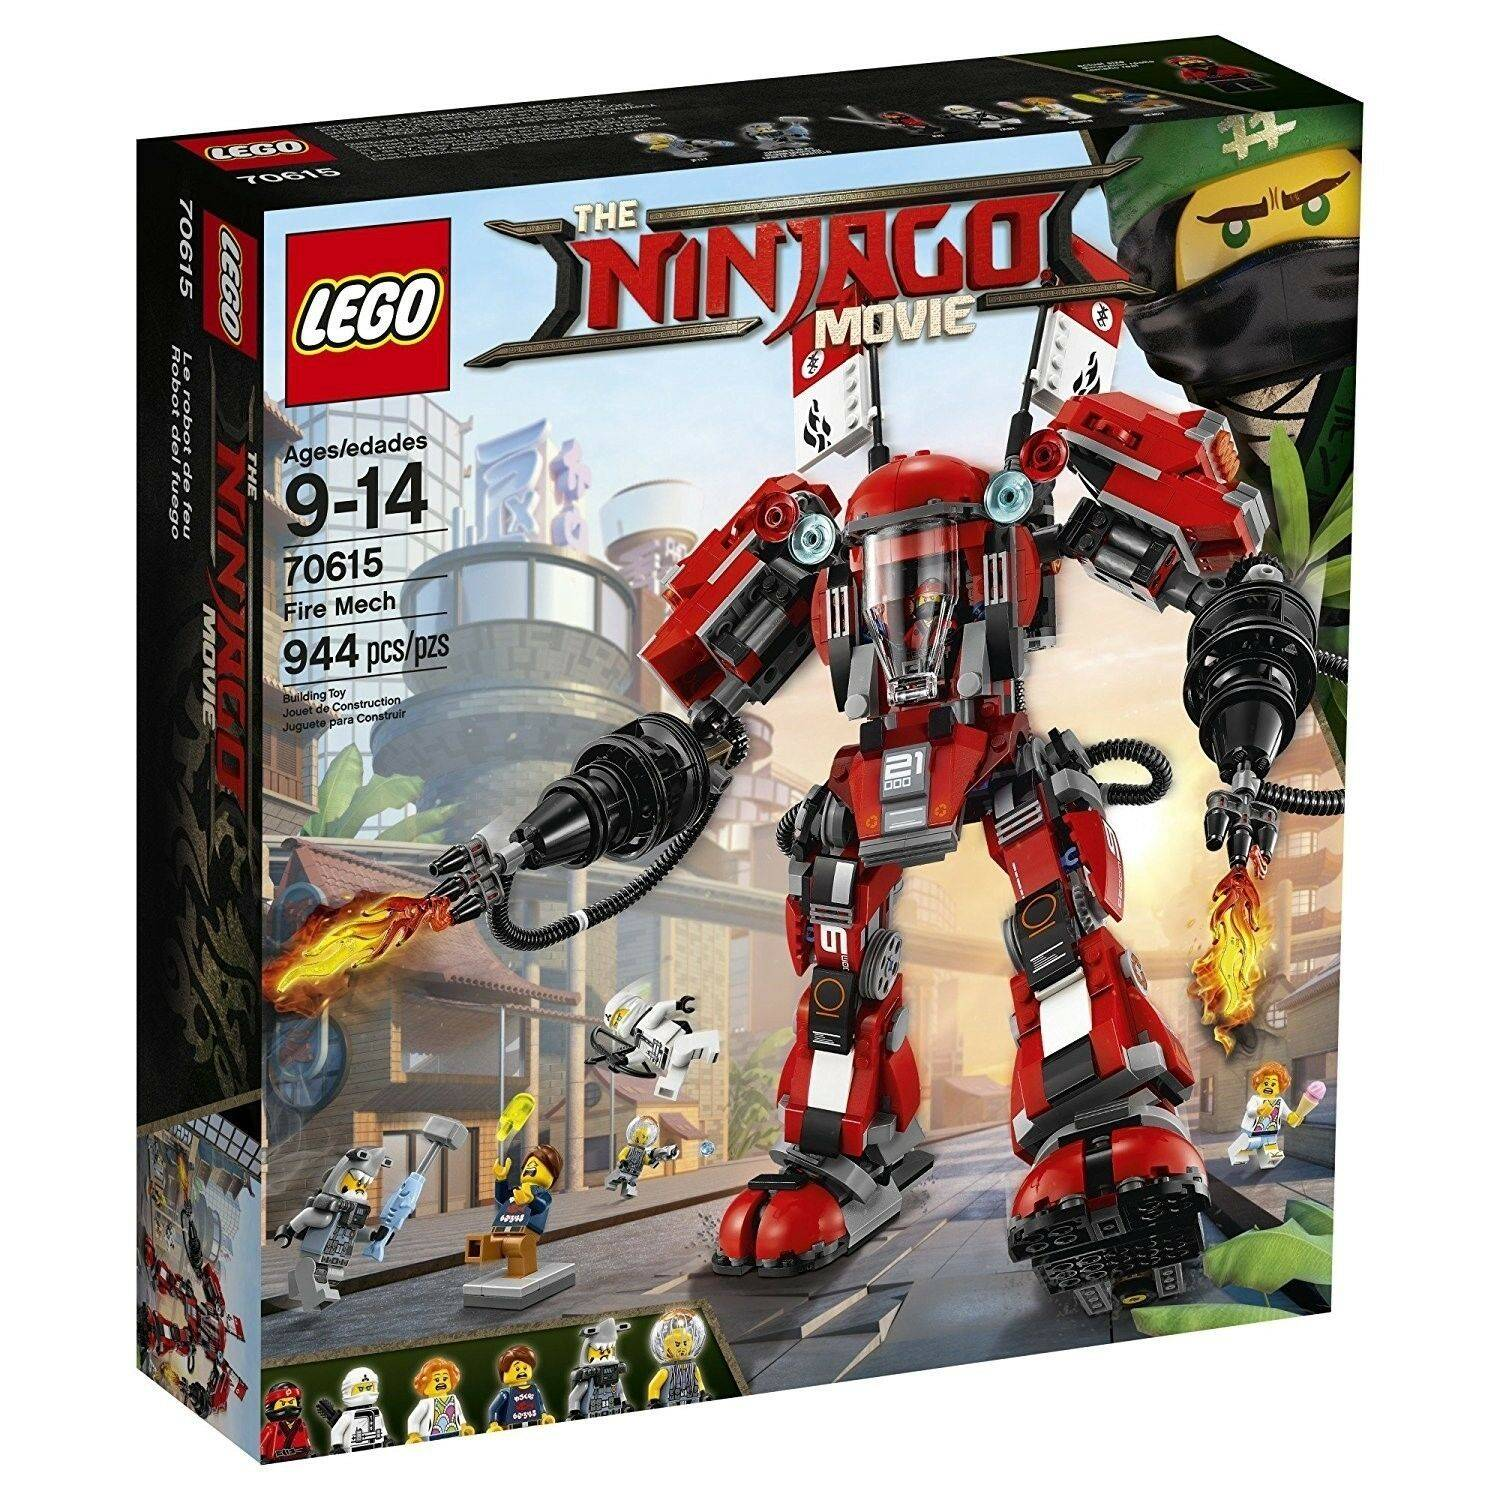 LEGO's Ninjago Movie Fire Mech Building Kit